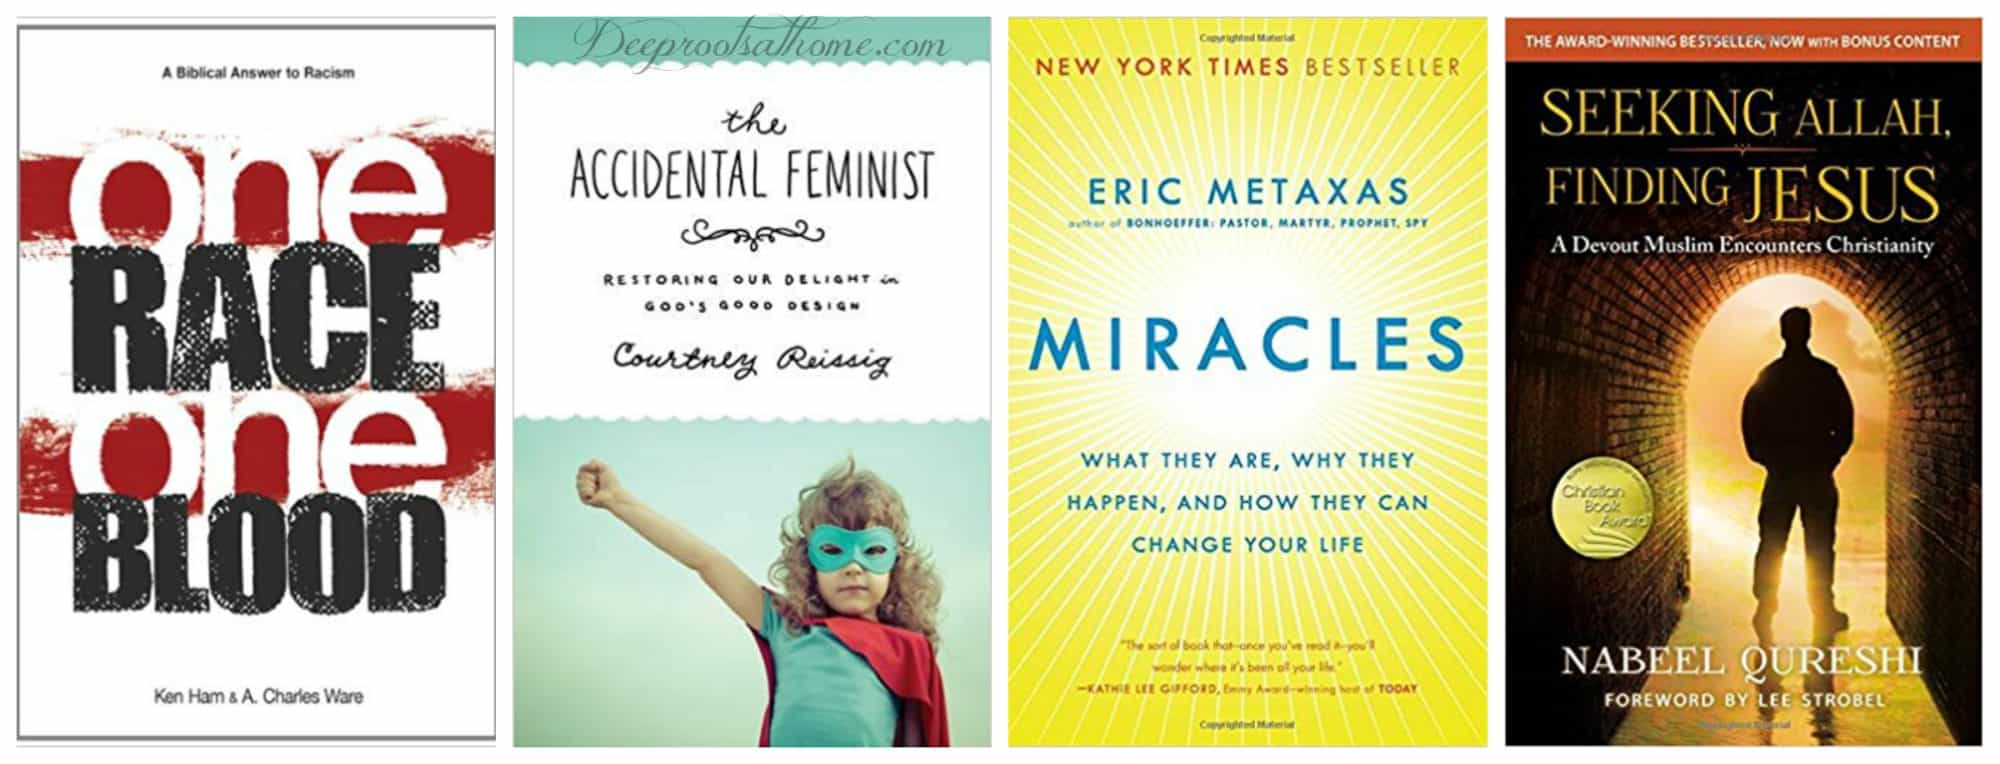 4 book covers: The Accidental Feminist by Courtney Reissig; Seeking Allah, Finding God by Nabeel Qureshi; Miracles by Eric Metaxas; One Race, One Blood by Dr, Charles Ware.